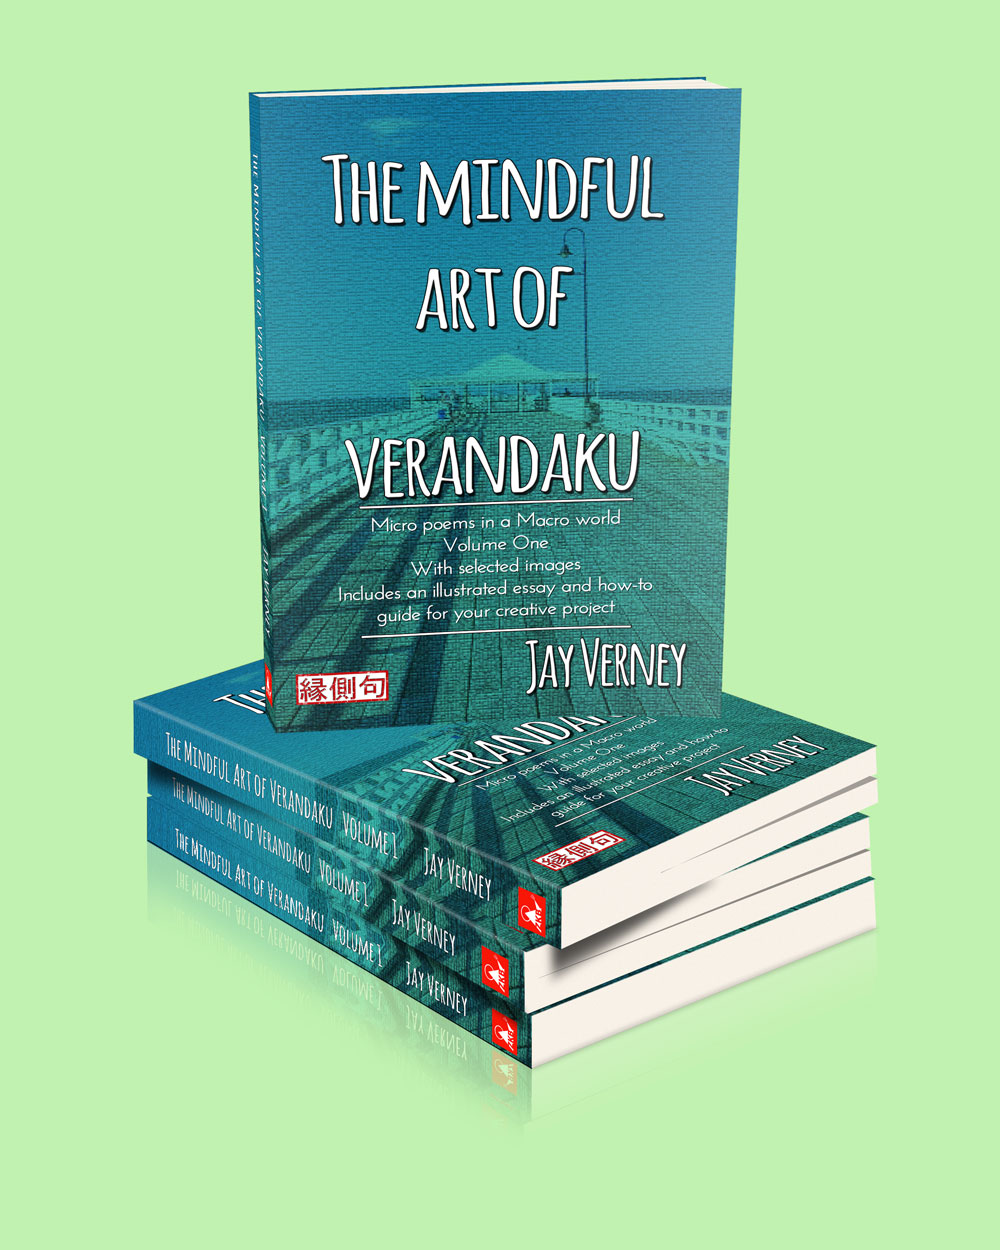 The Mindful Art of Verandaku Volume 1 Book Cover